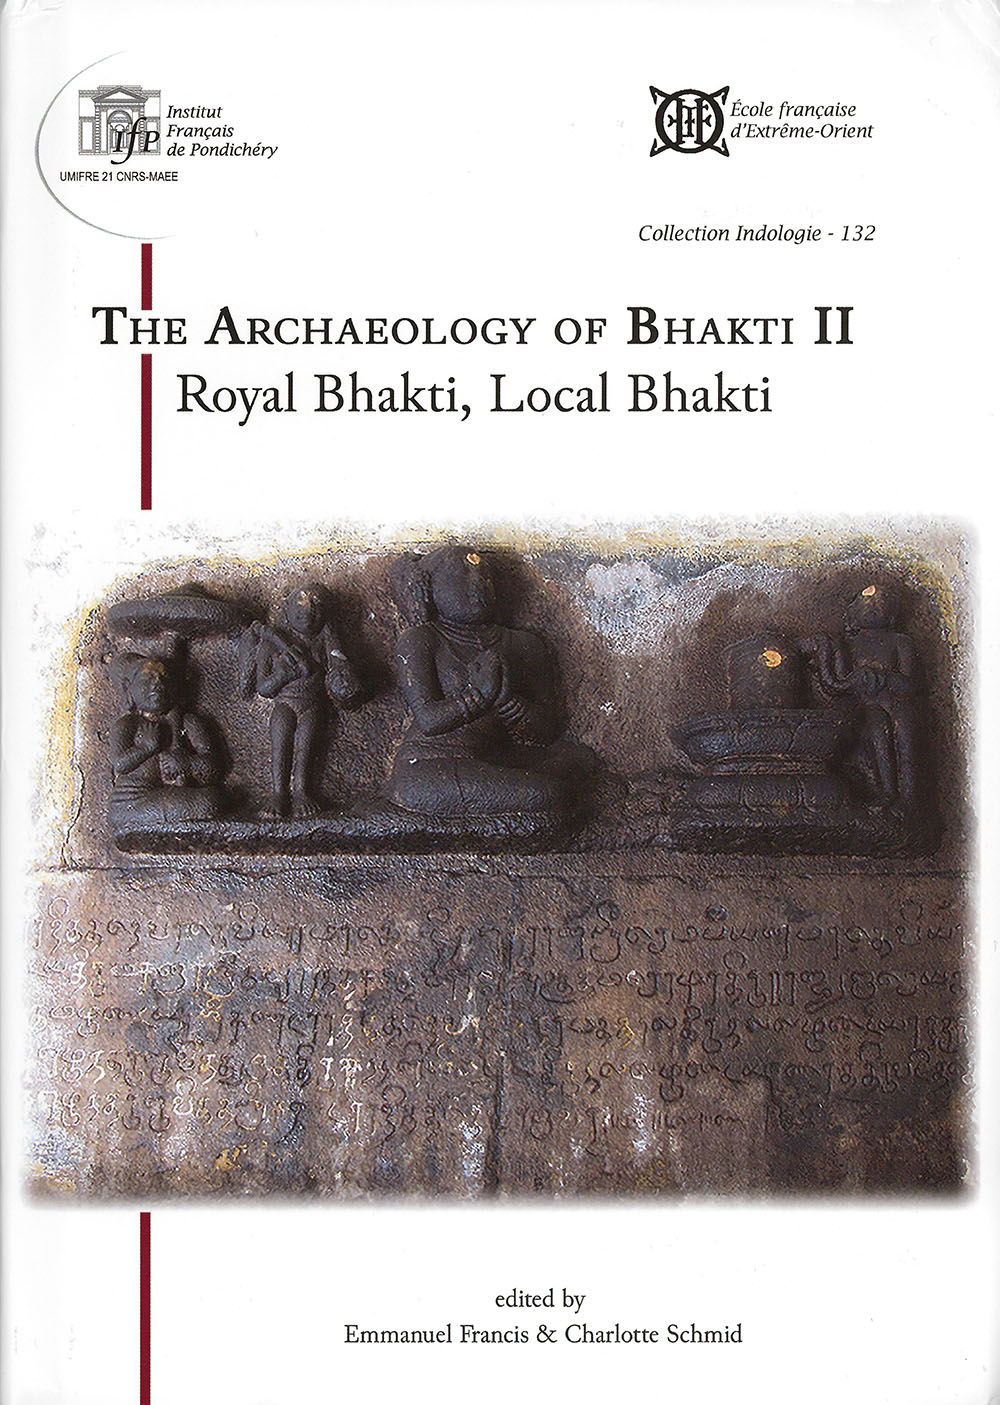 The Archaeology of Bhakti II.